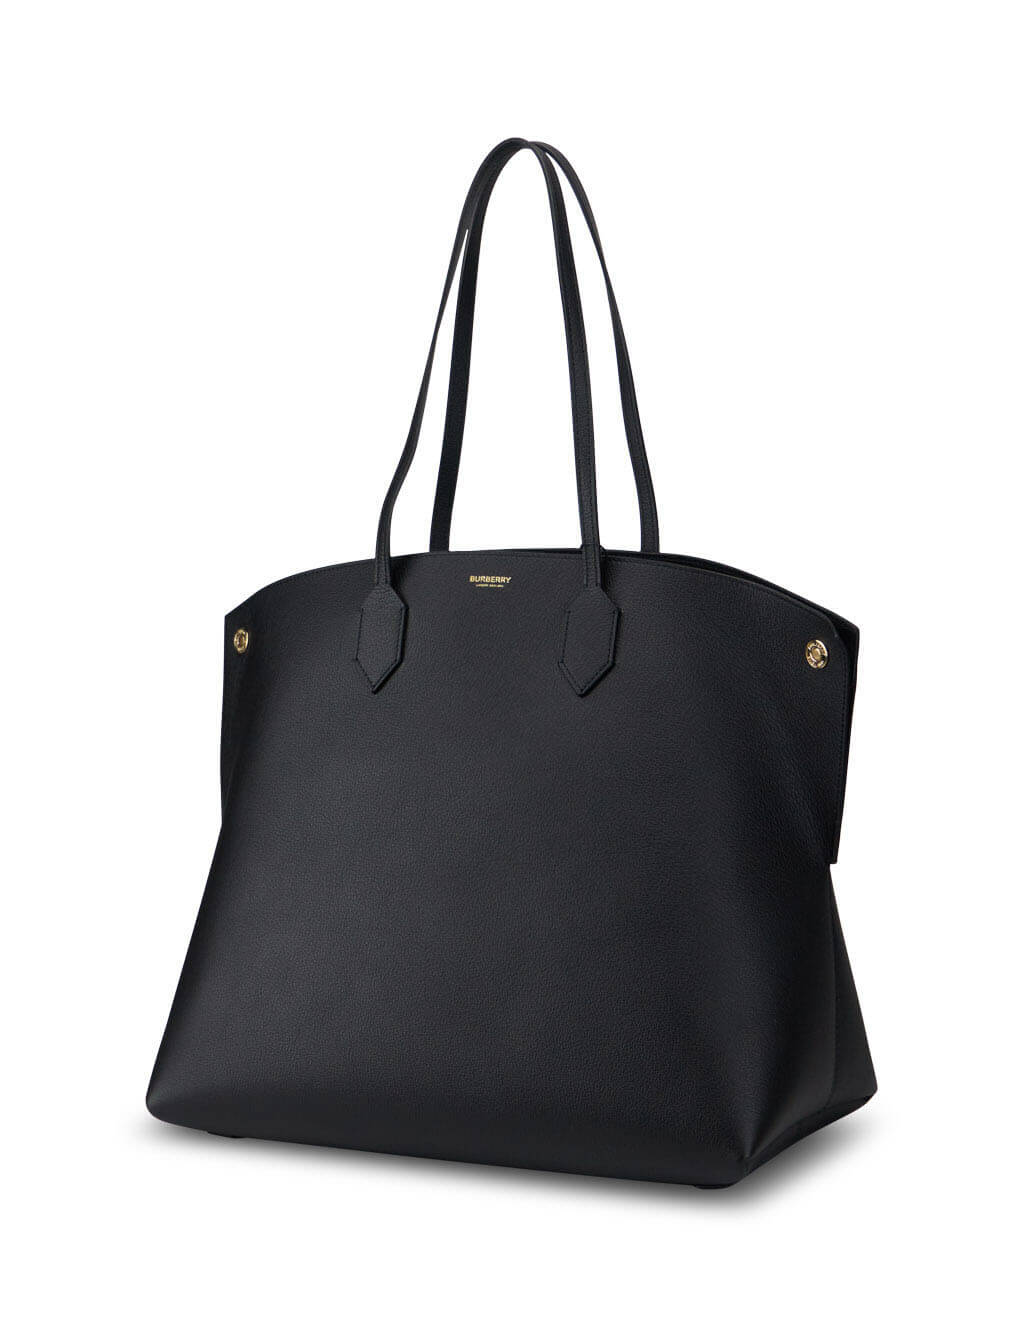 womens burberry large leather society tote bag in black 8032163-A1189